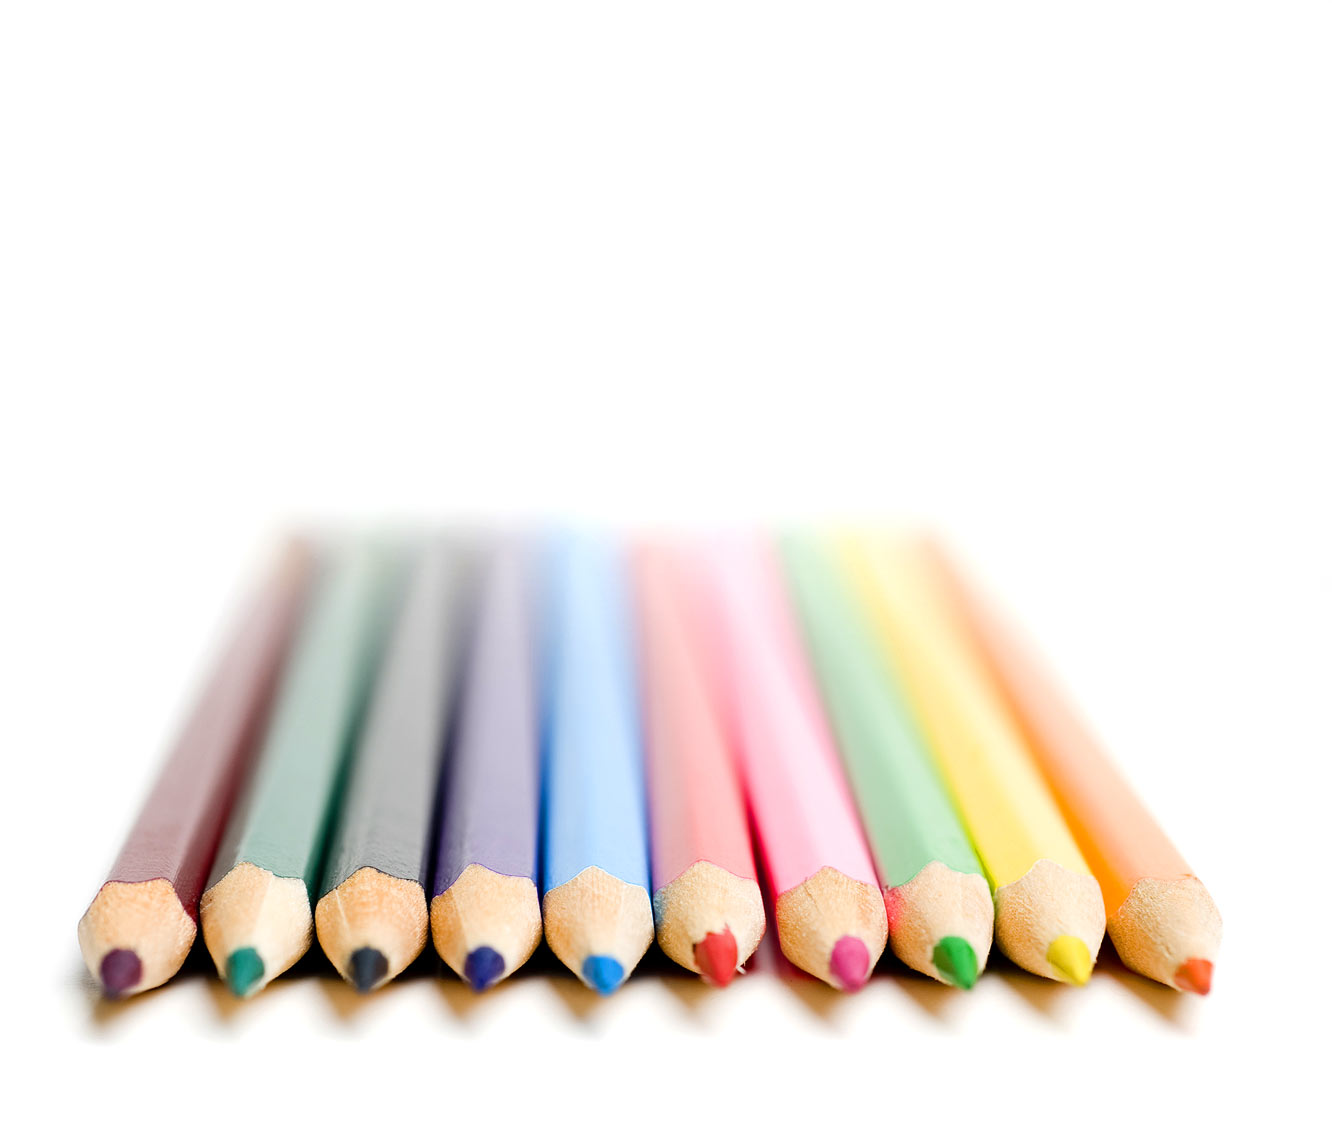 still life photographer Bryan Regan Raleigh colorful pencils for CREE